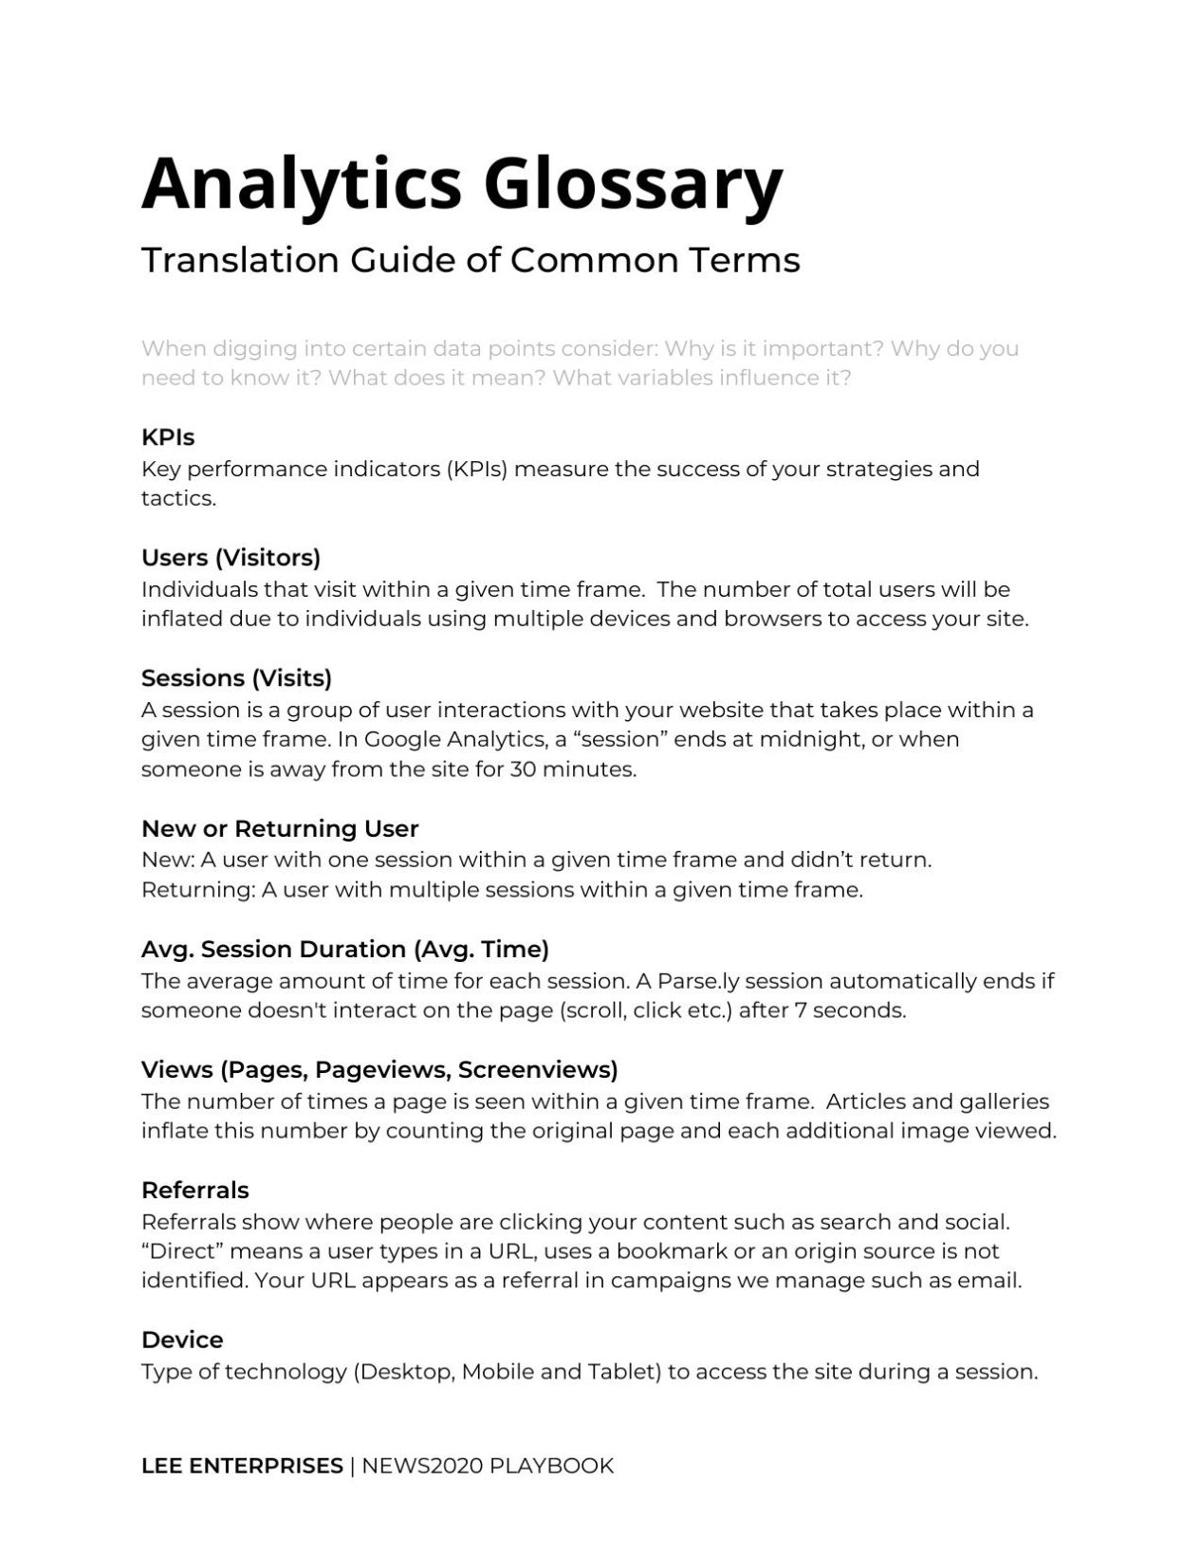 Analytics glossary - Key metrics and what they mean